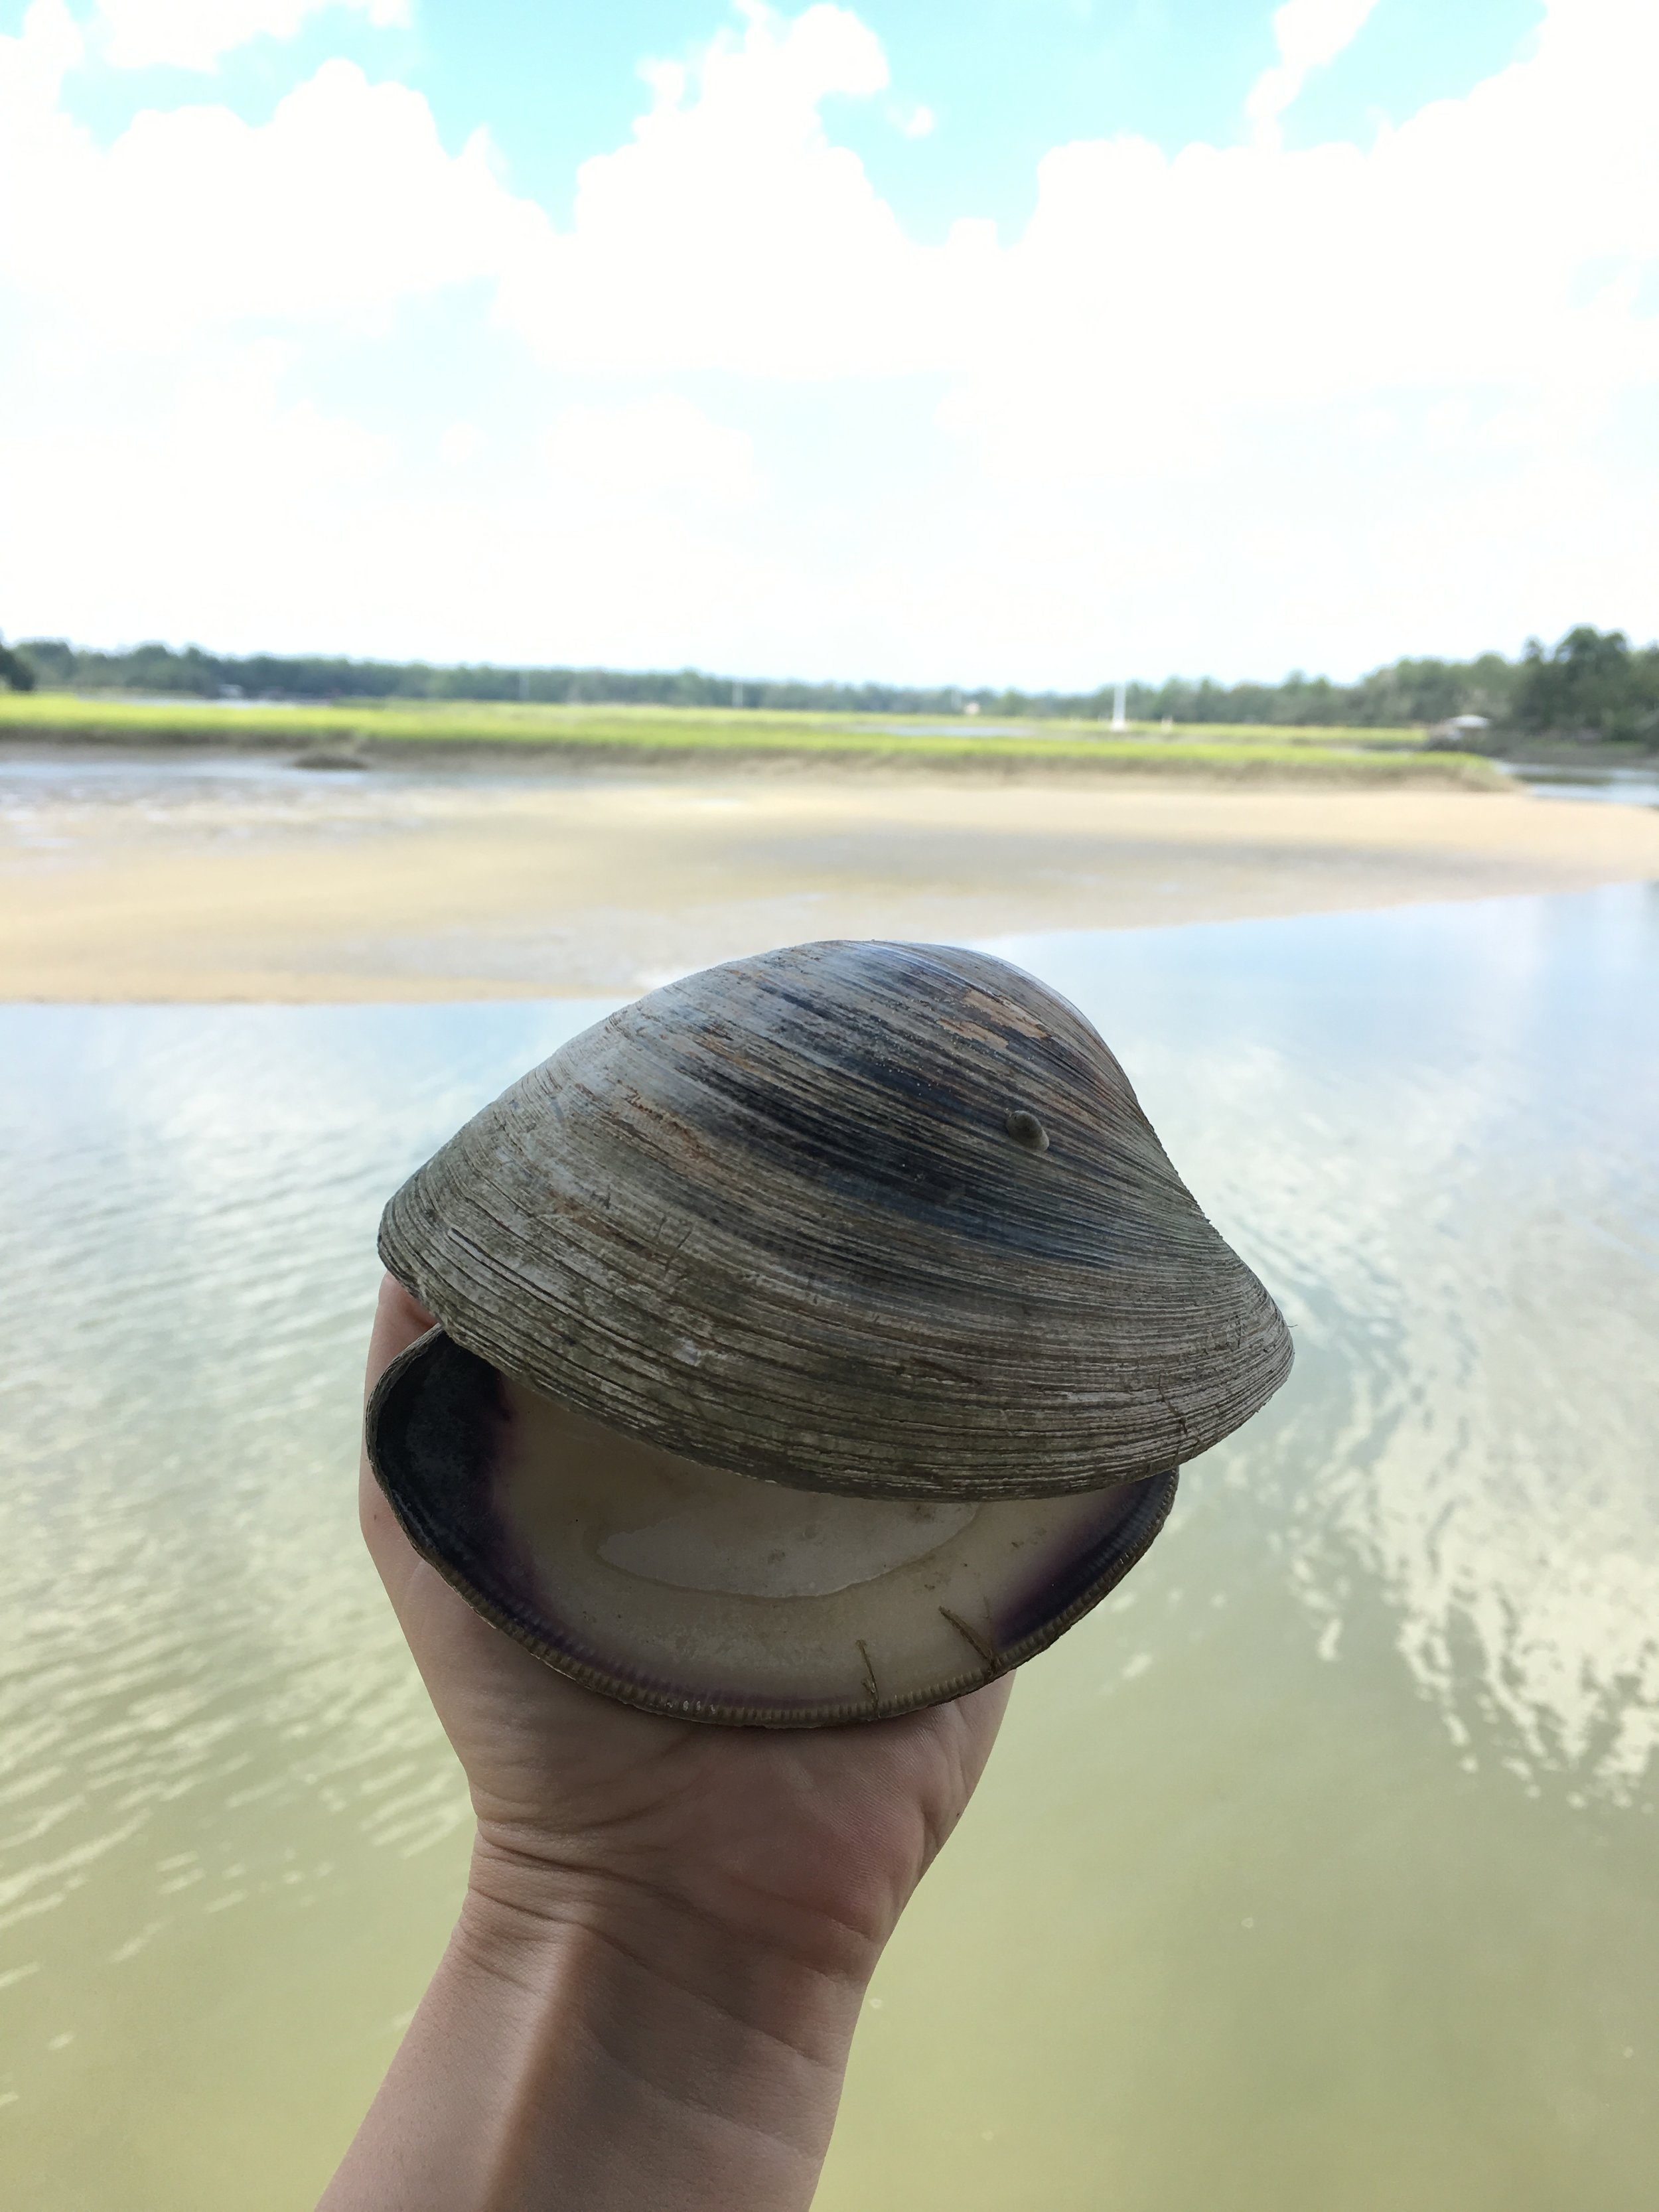 the biggest of the bunch and the sandbar in the background. If you squint you can see the Clamily Community